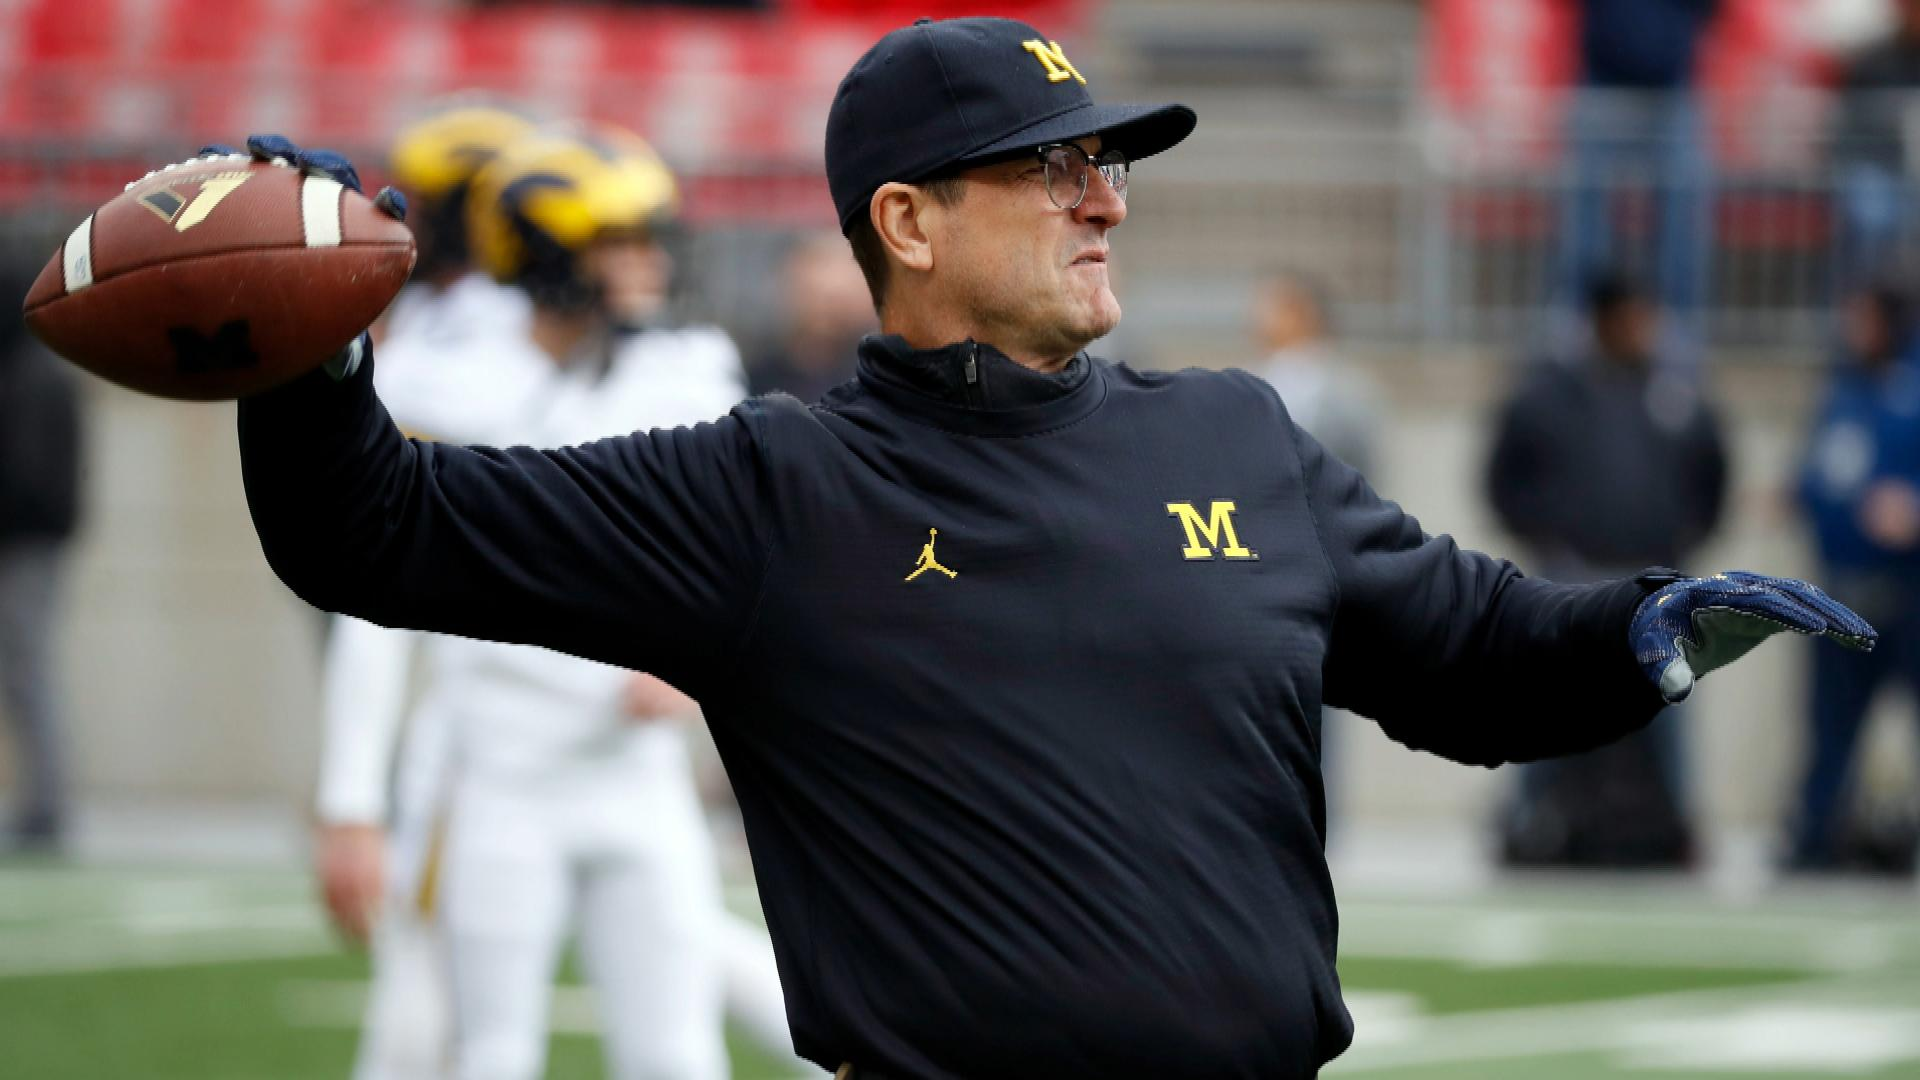 Ohio State, Michigan, LSU top best places to play college football